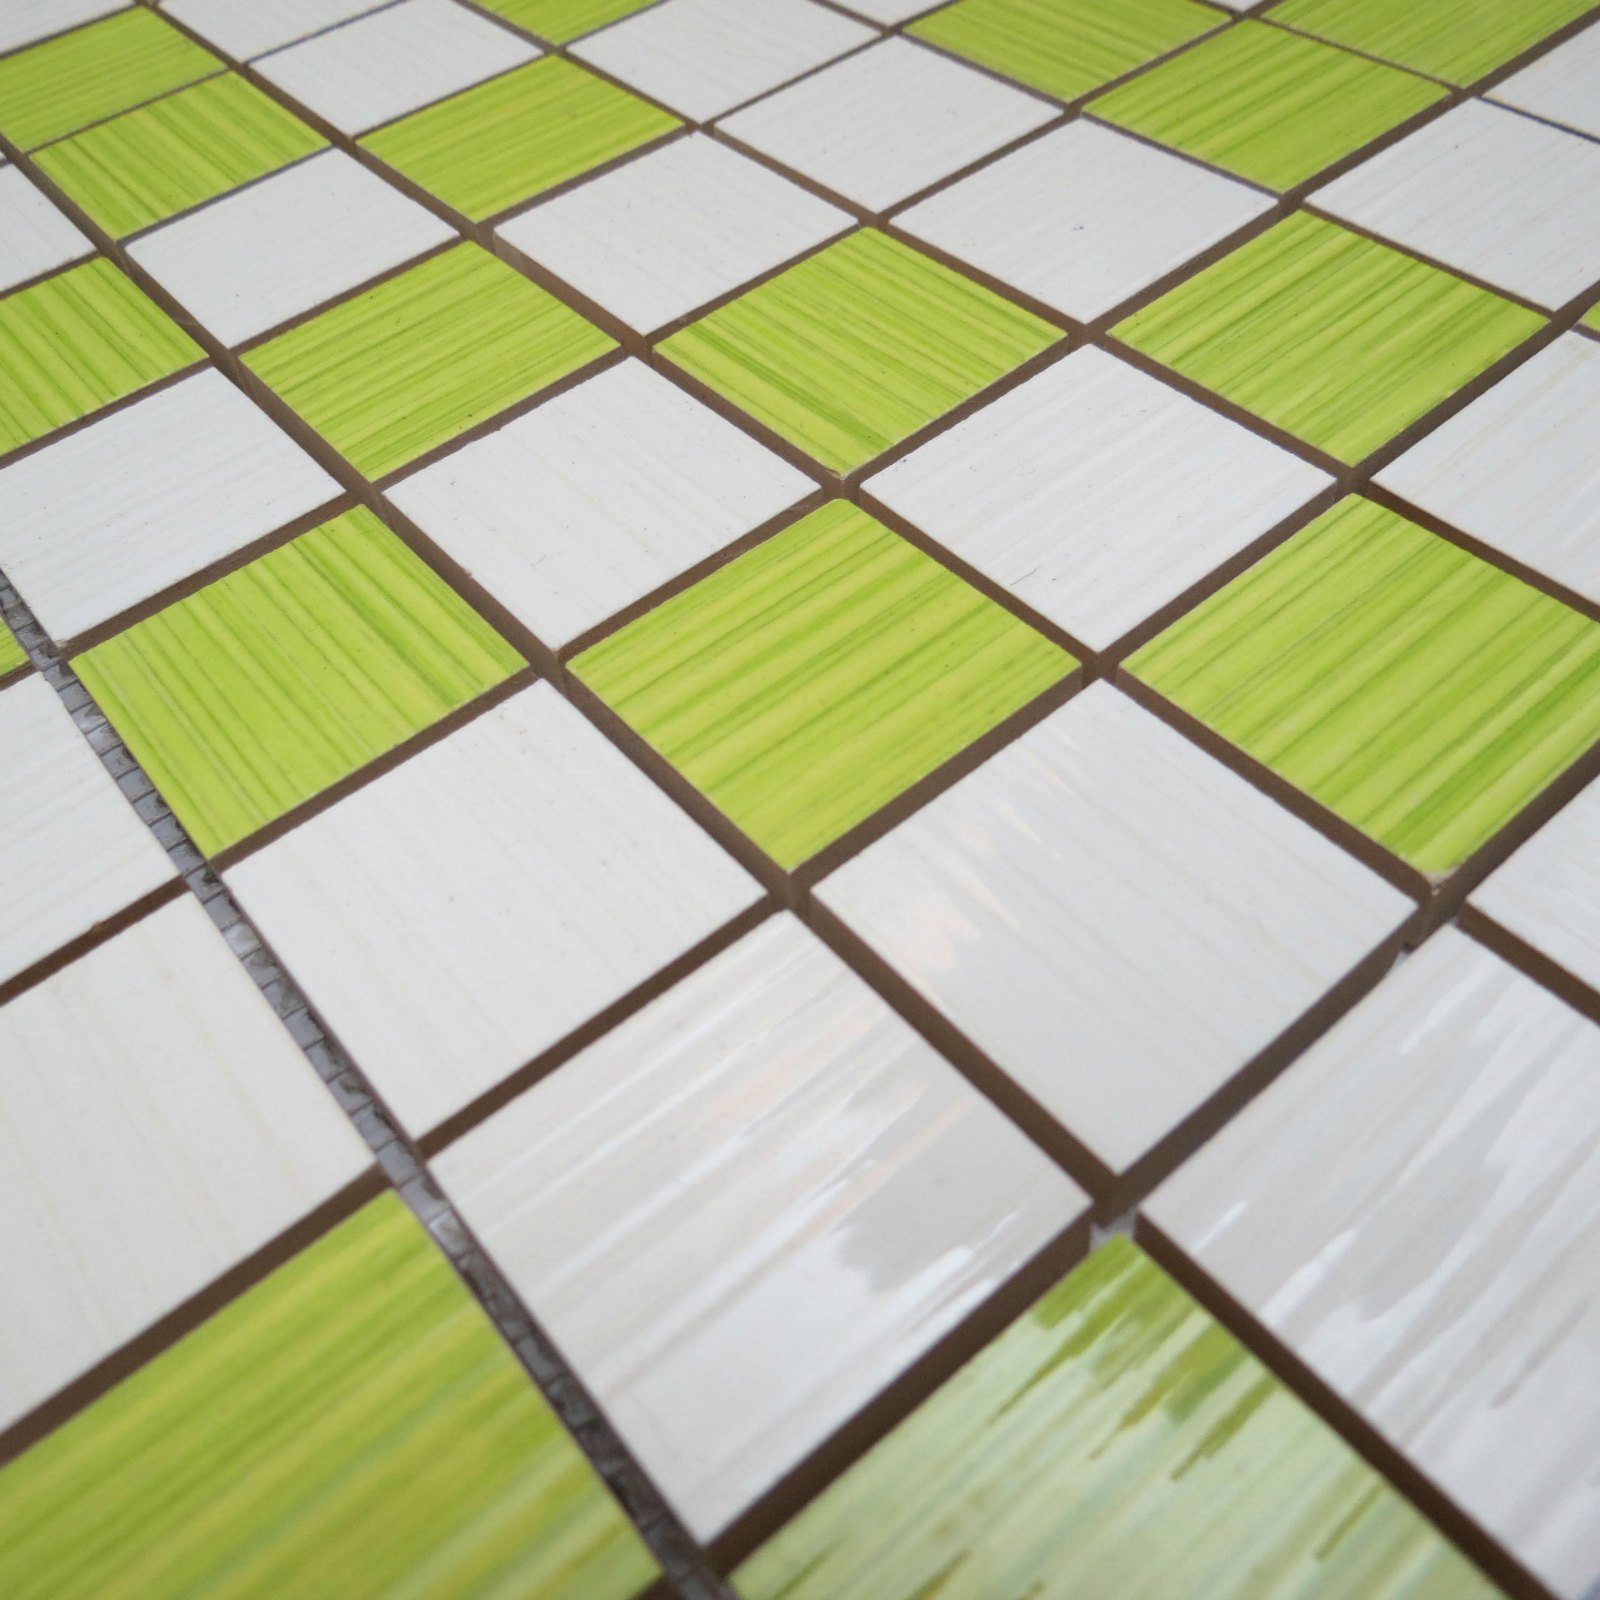 Latest market report europe ceramic mosaic tile market report and browse full report with toc dailygadgetfo Choice Image